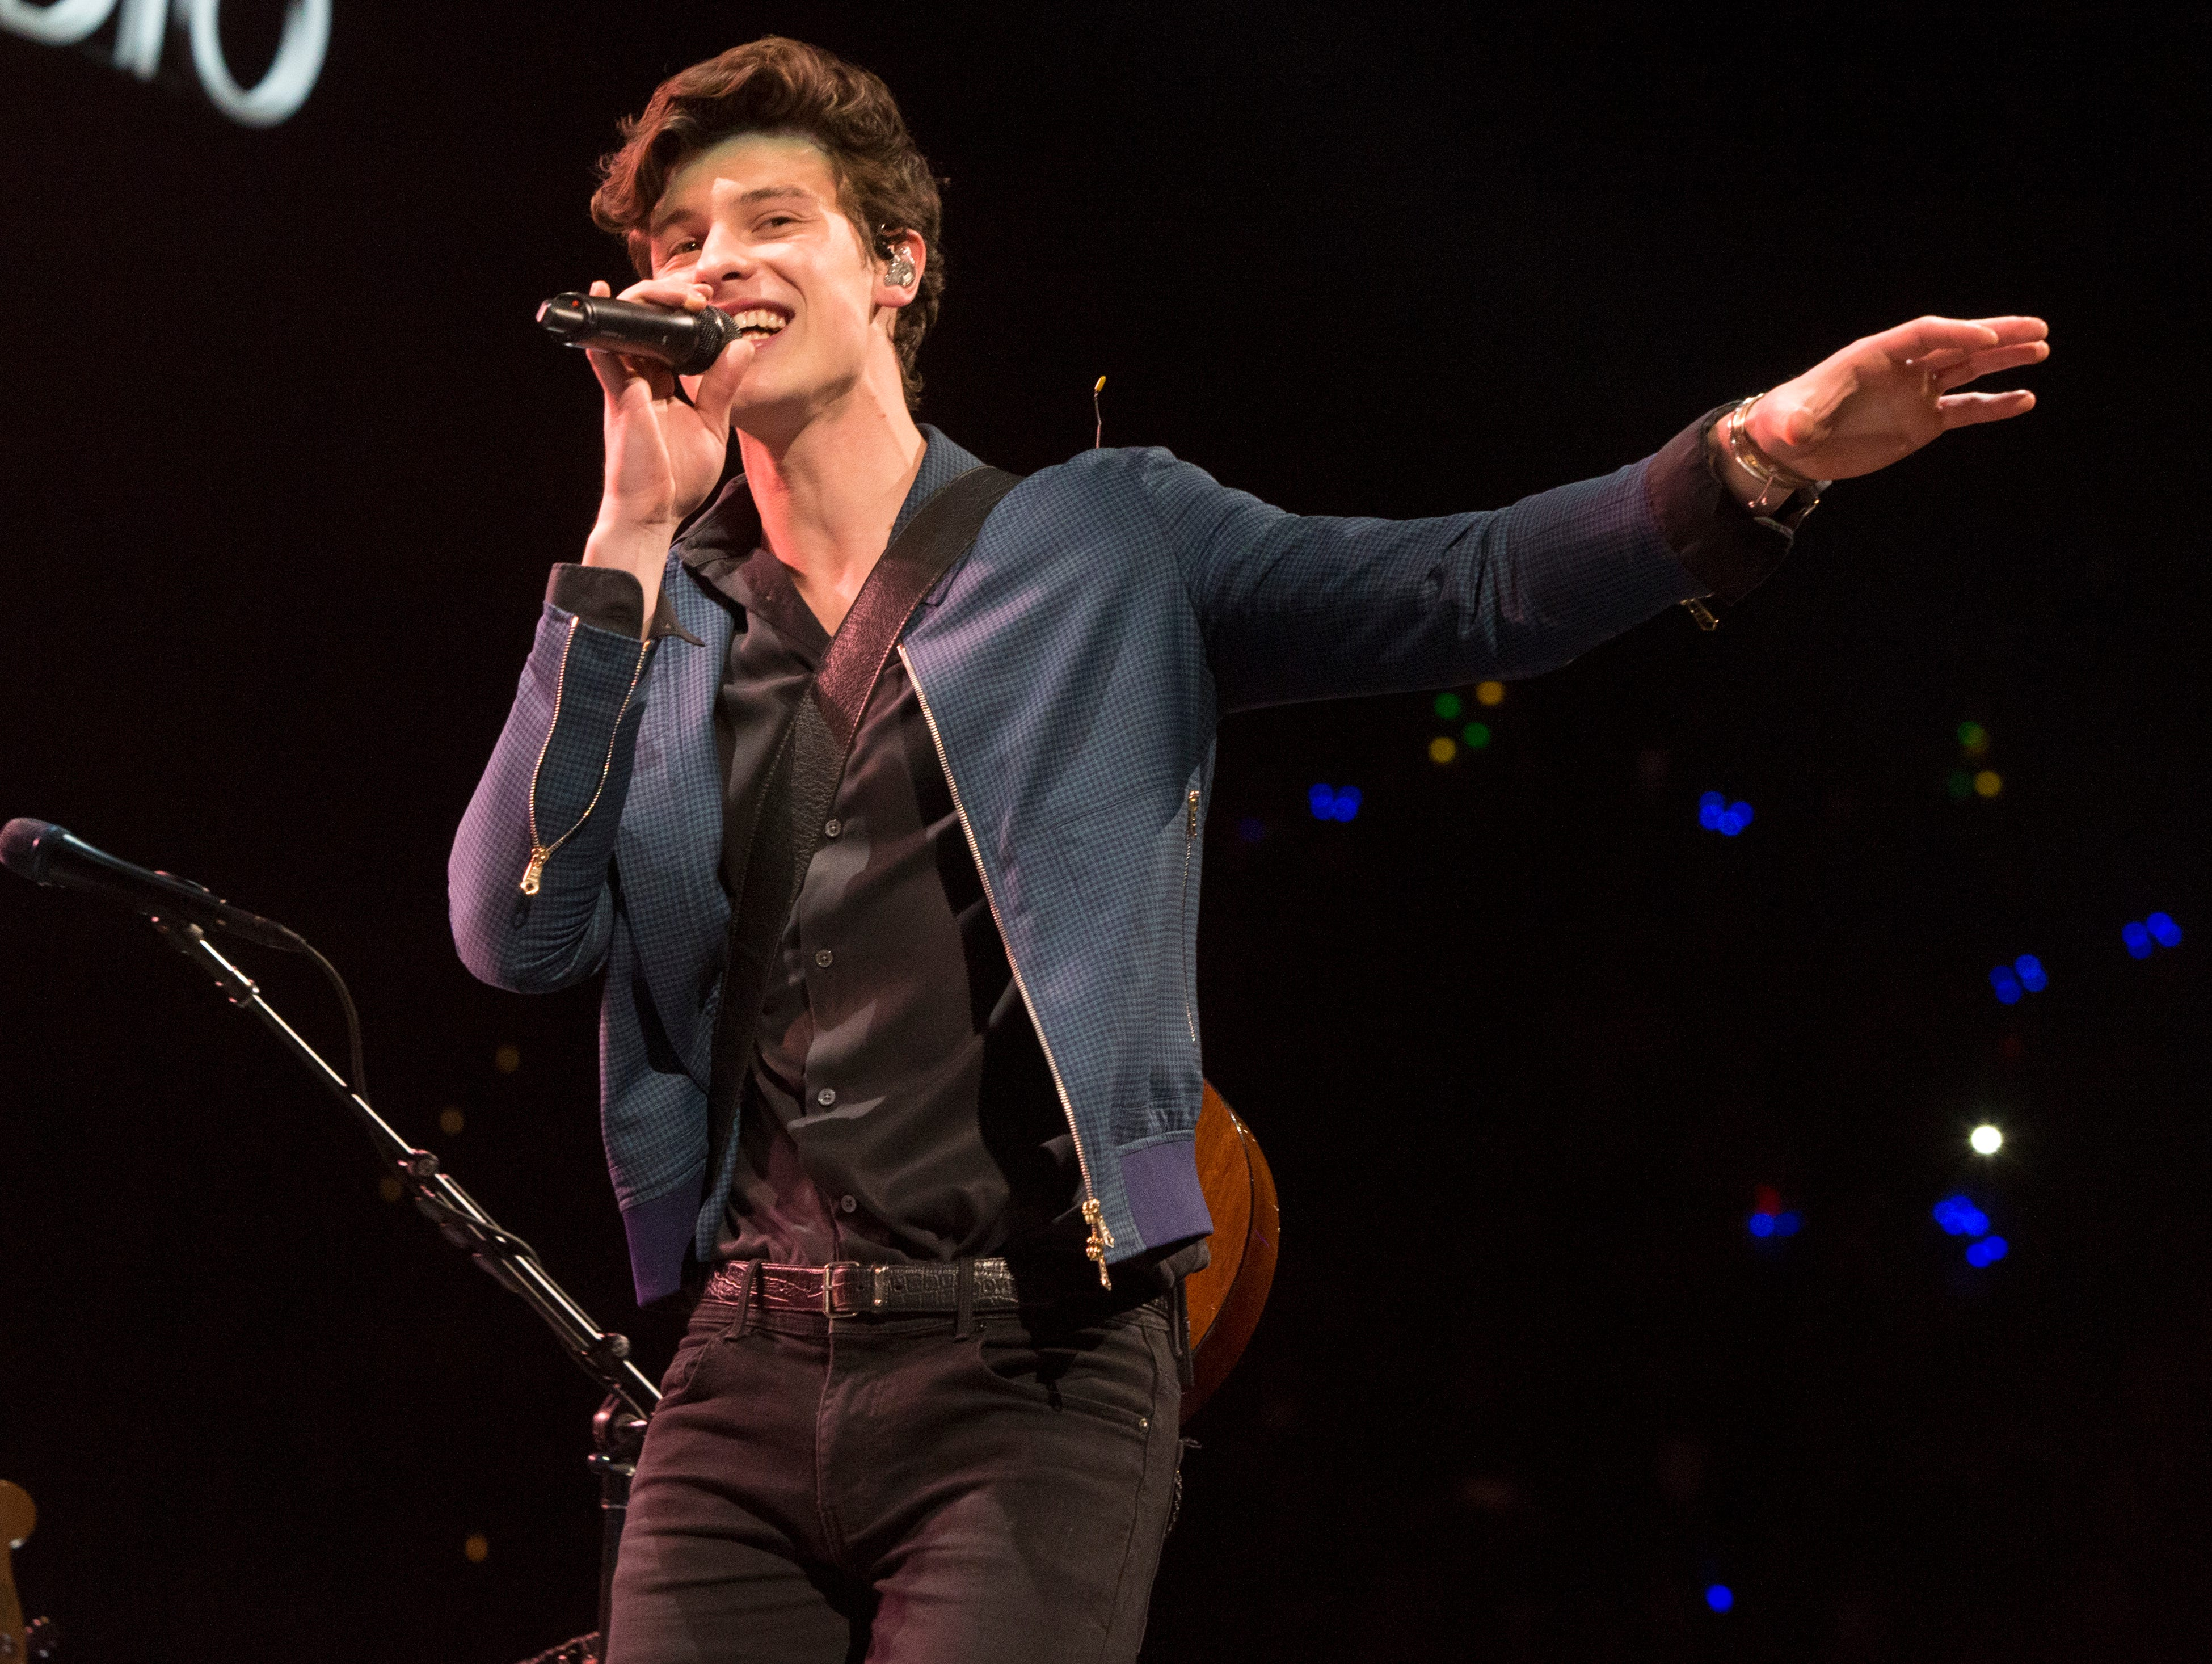 Shawn Mendes also took the stage at the concert.